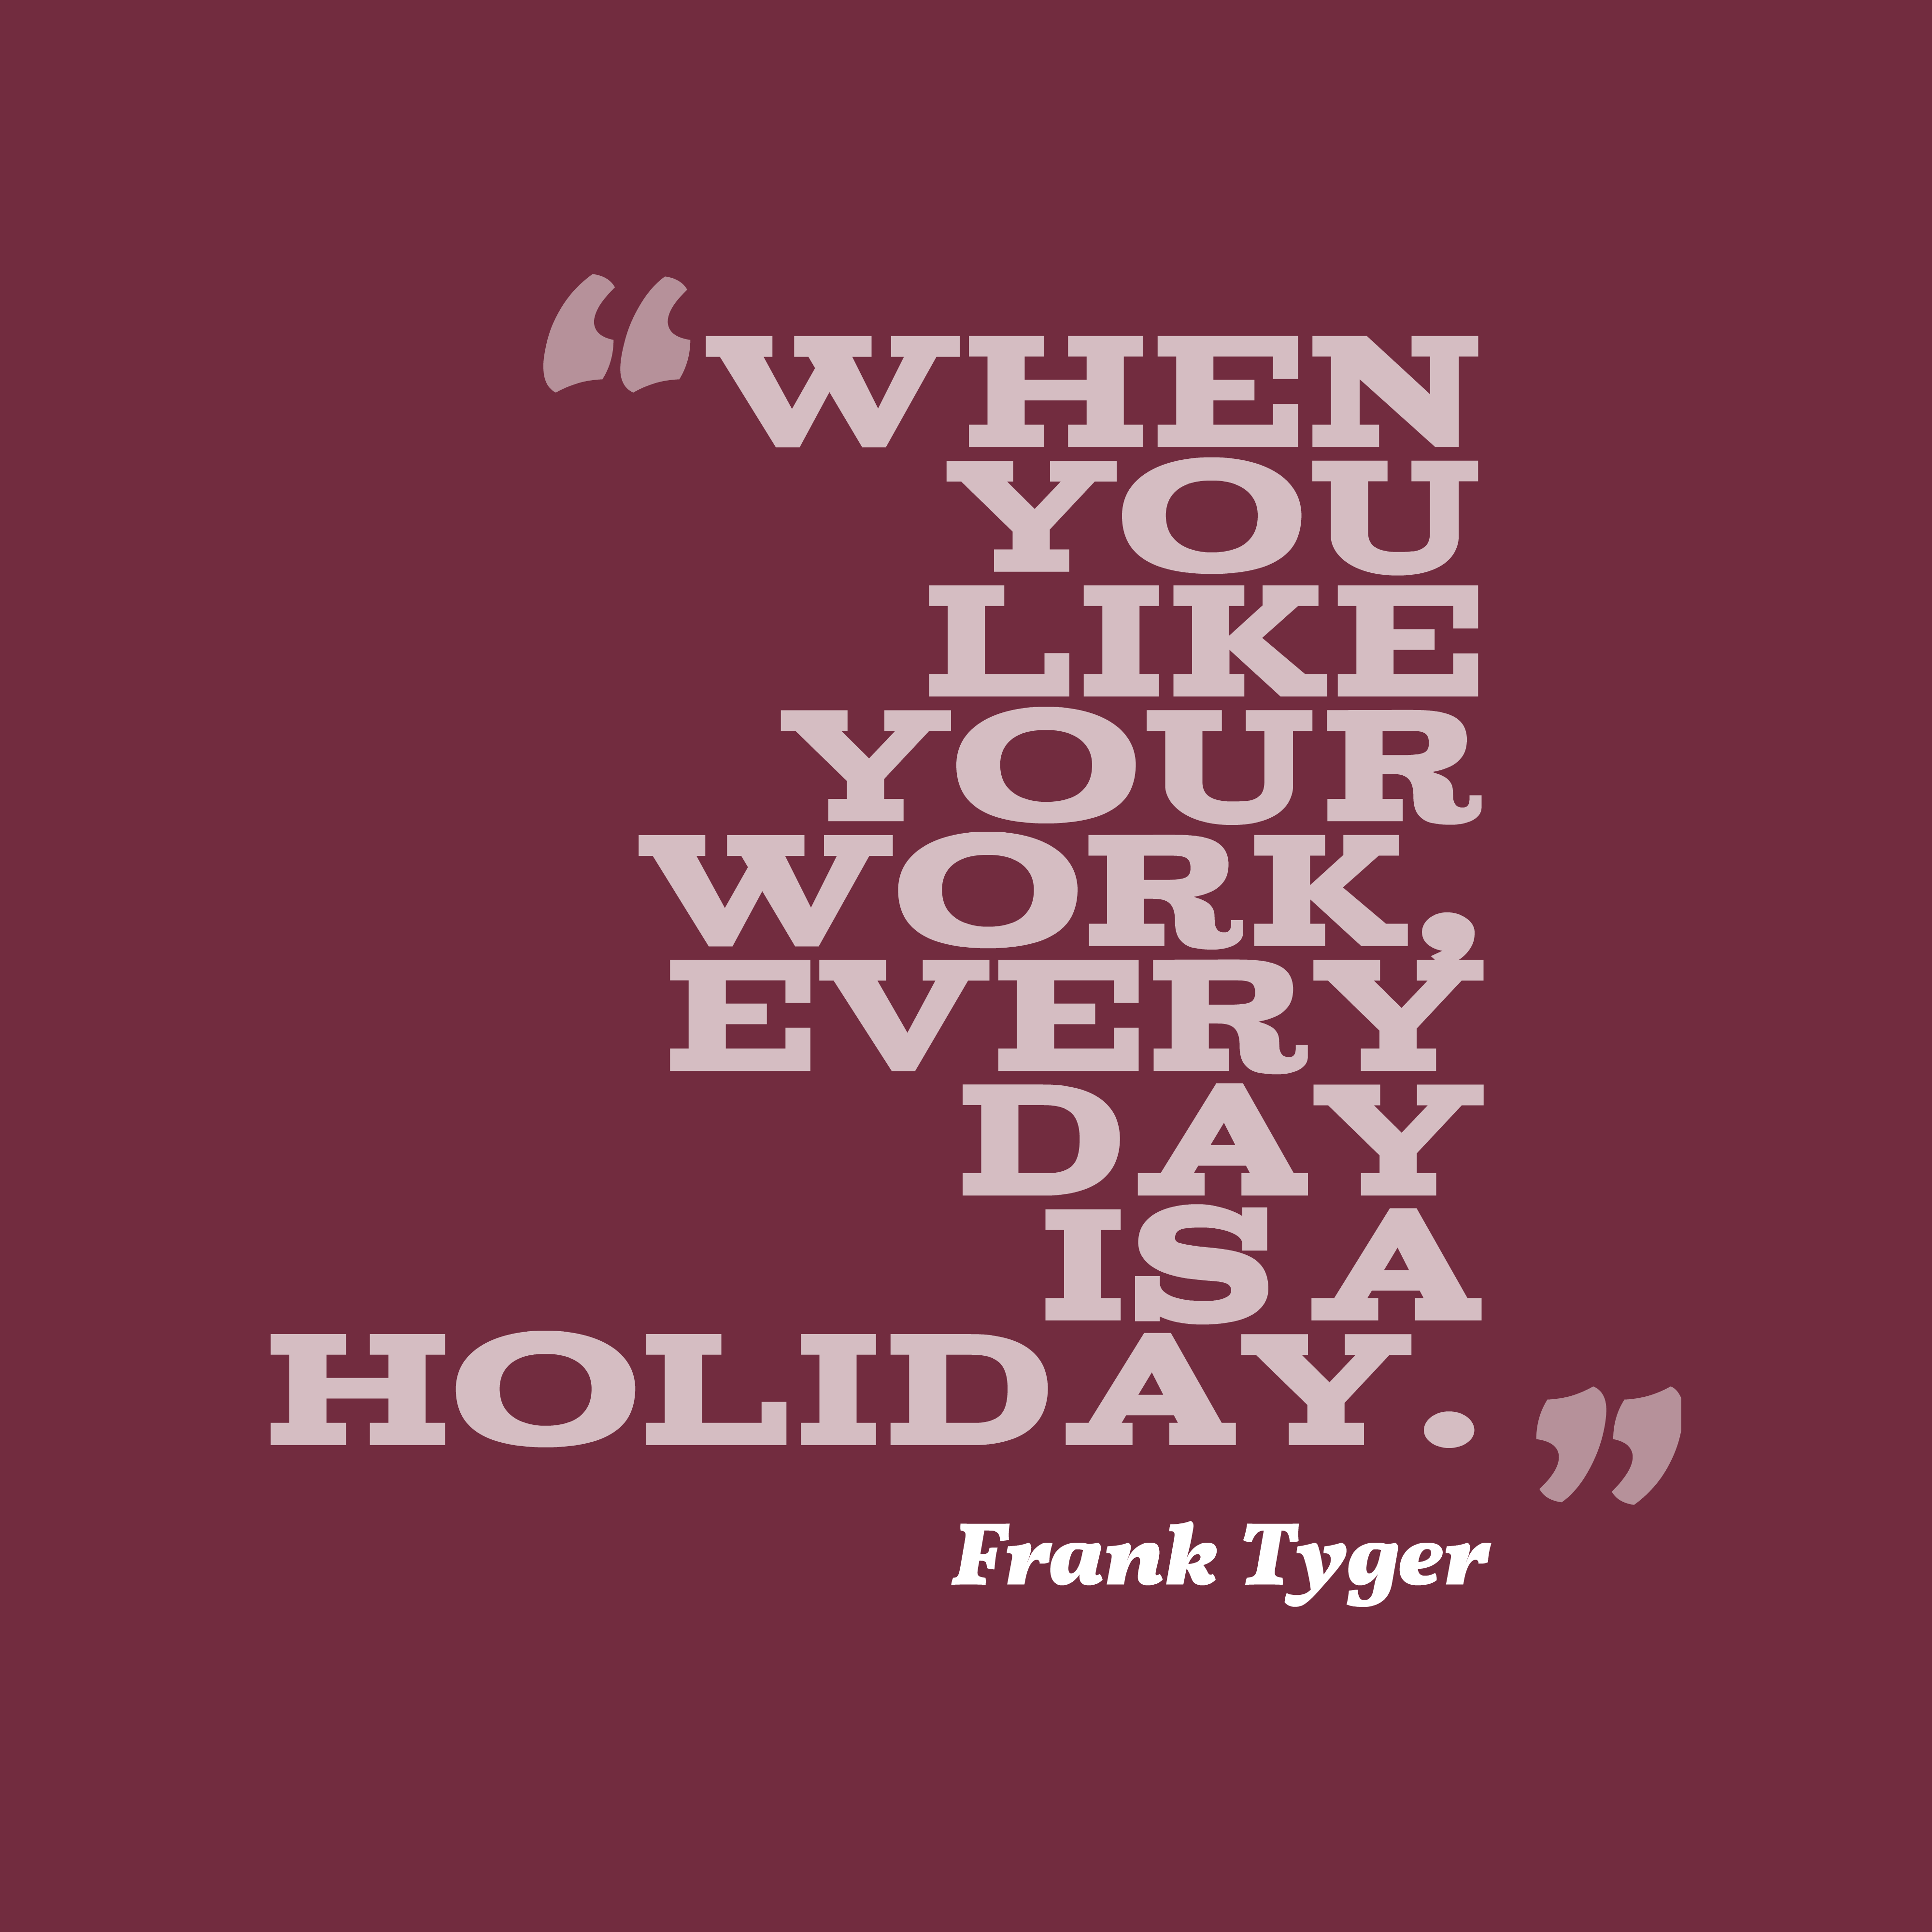 Frank Tyger quote about work.